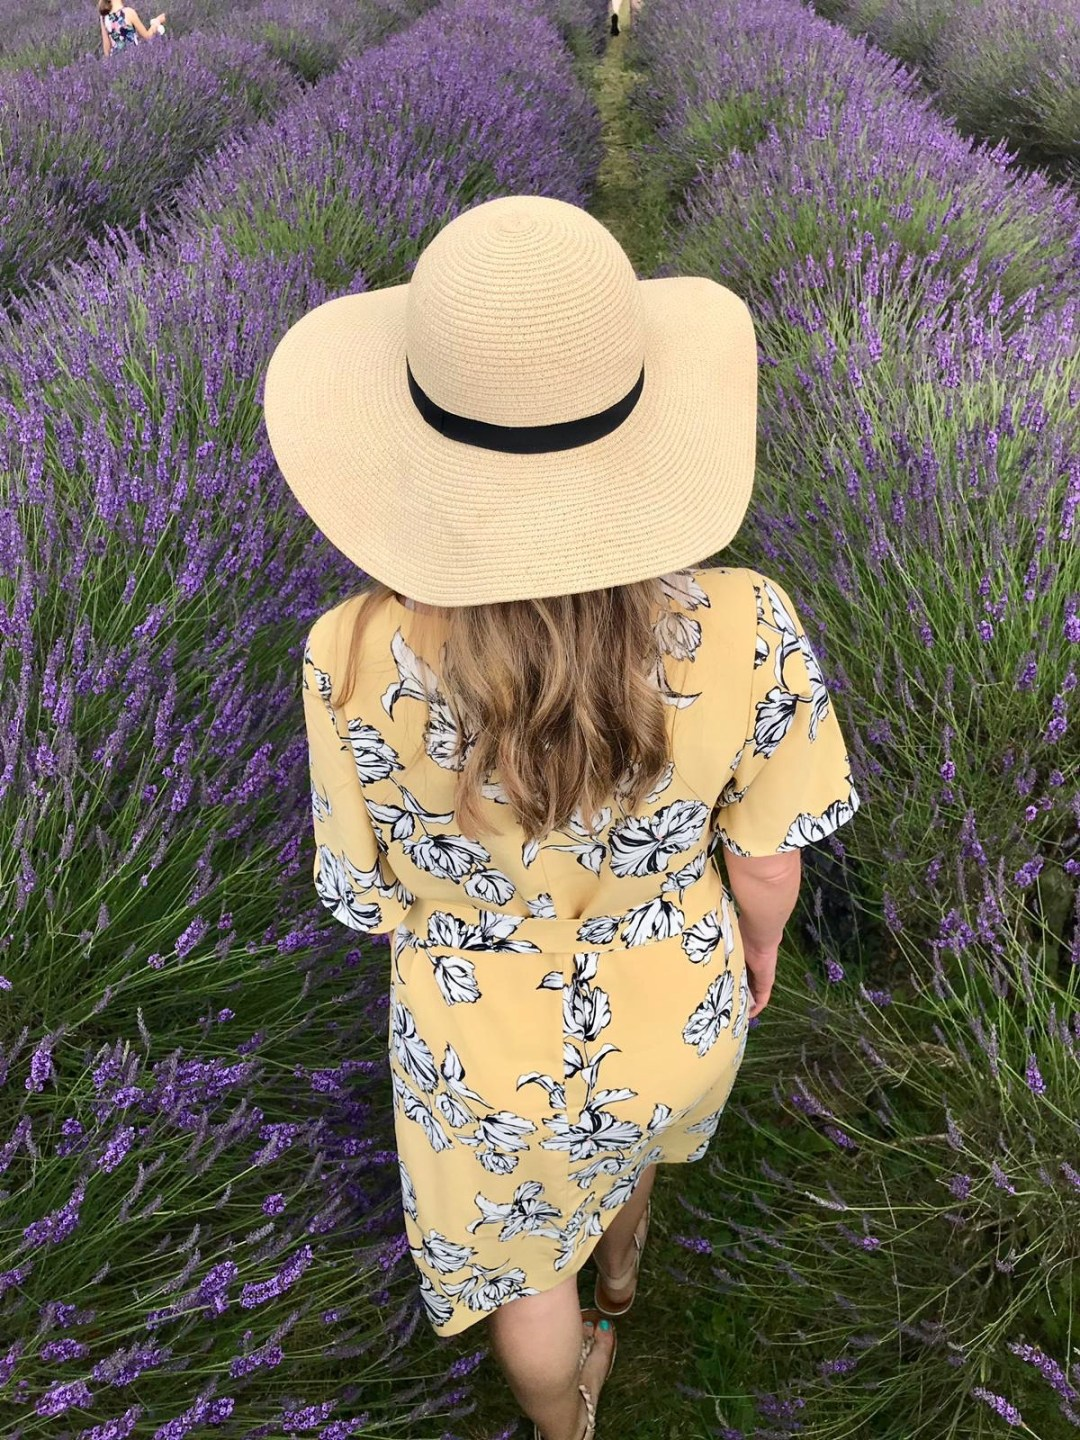 Girl in hat walks through a field of lavender